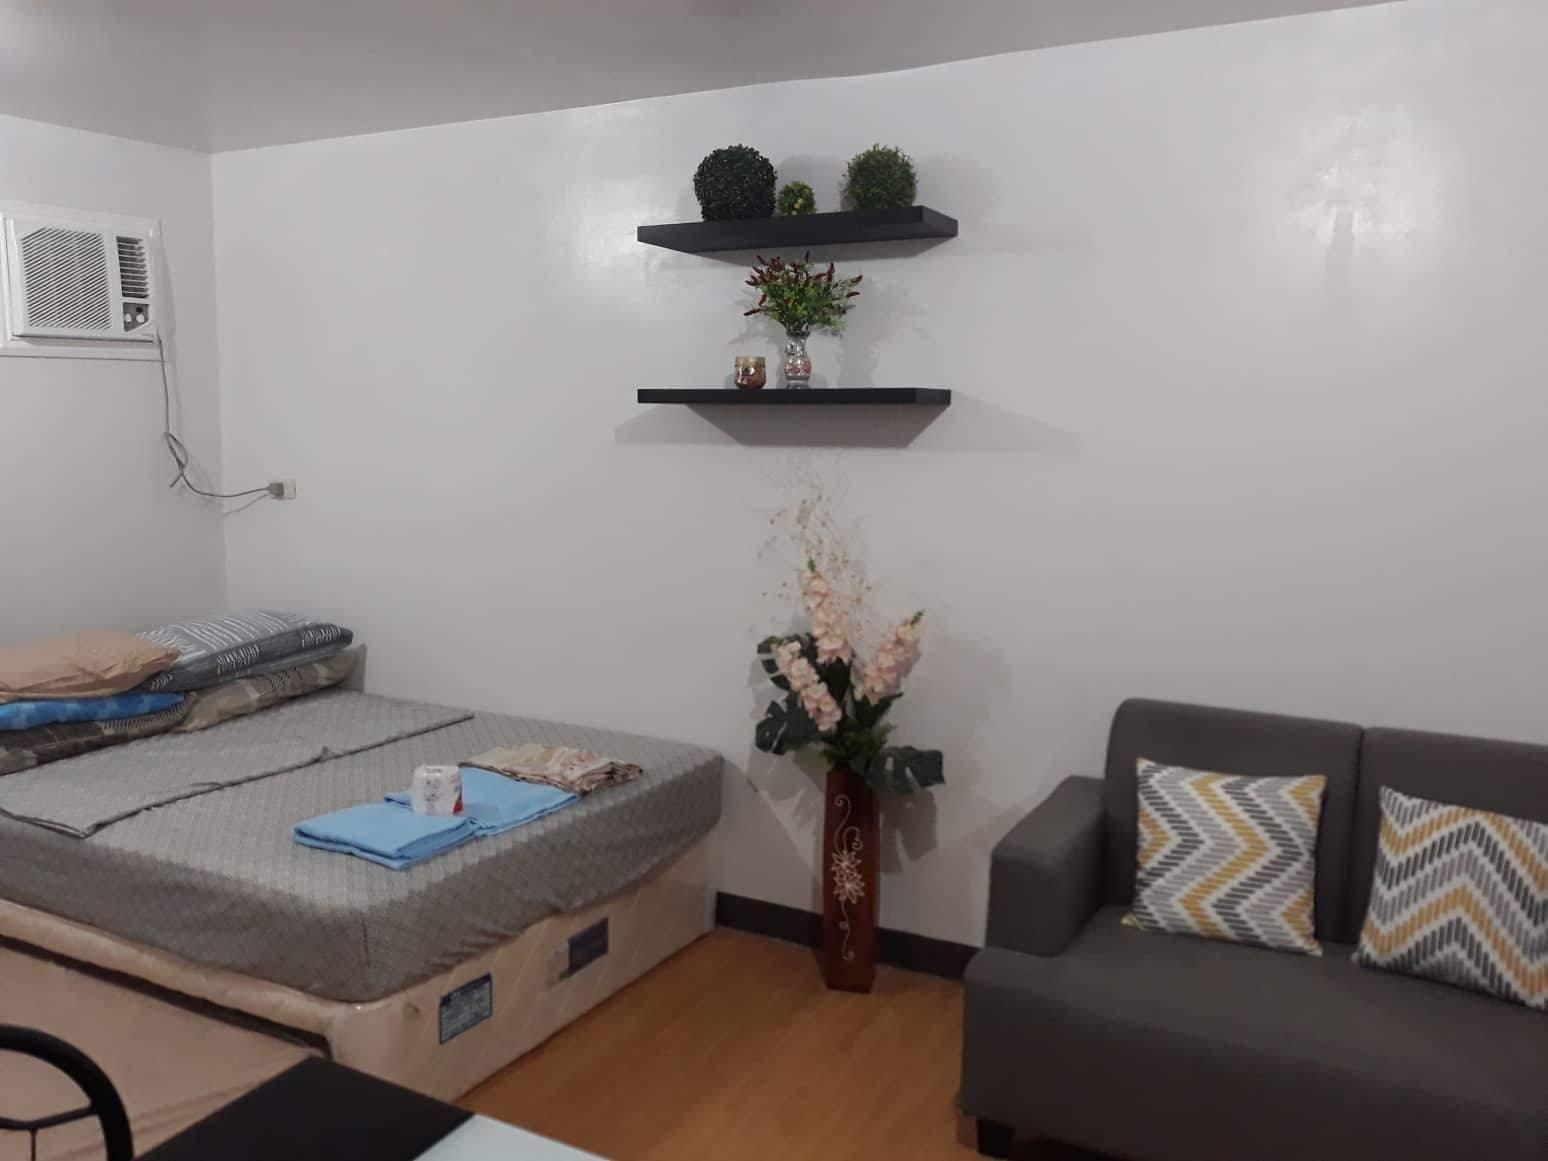 Studio unit at hernan cortes street dos - Hotels Information/Map/Reviews/Reservation